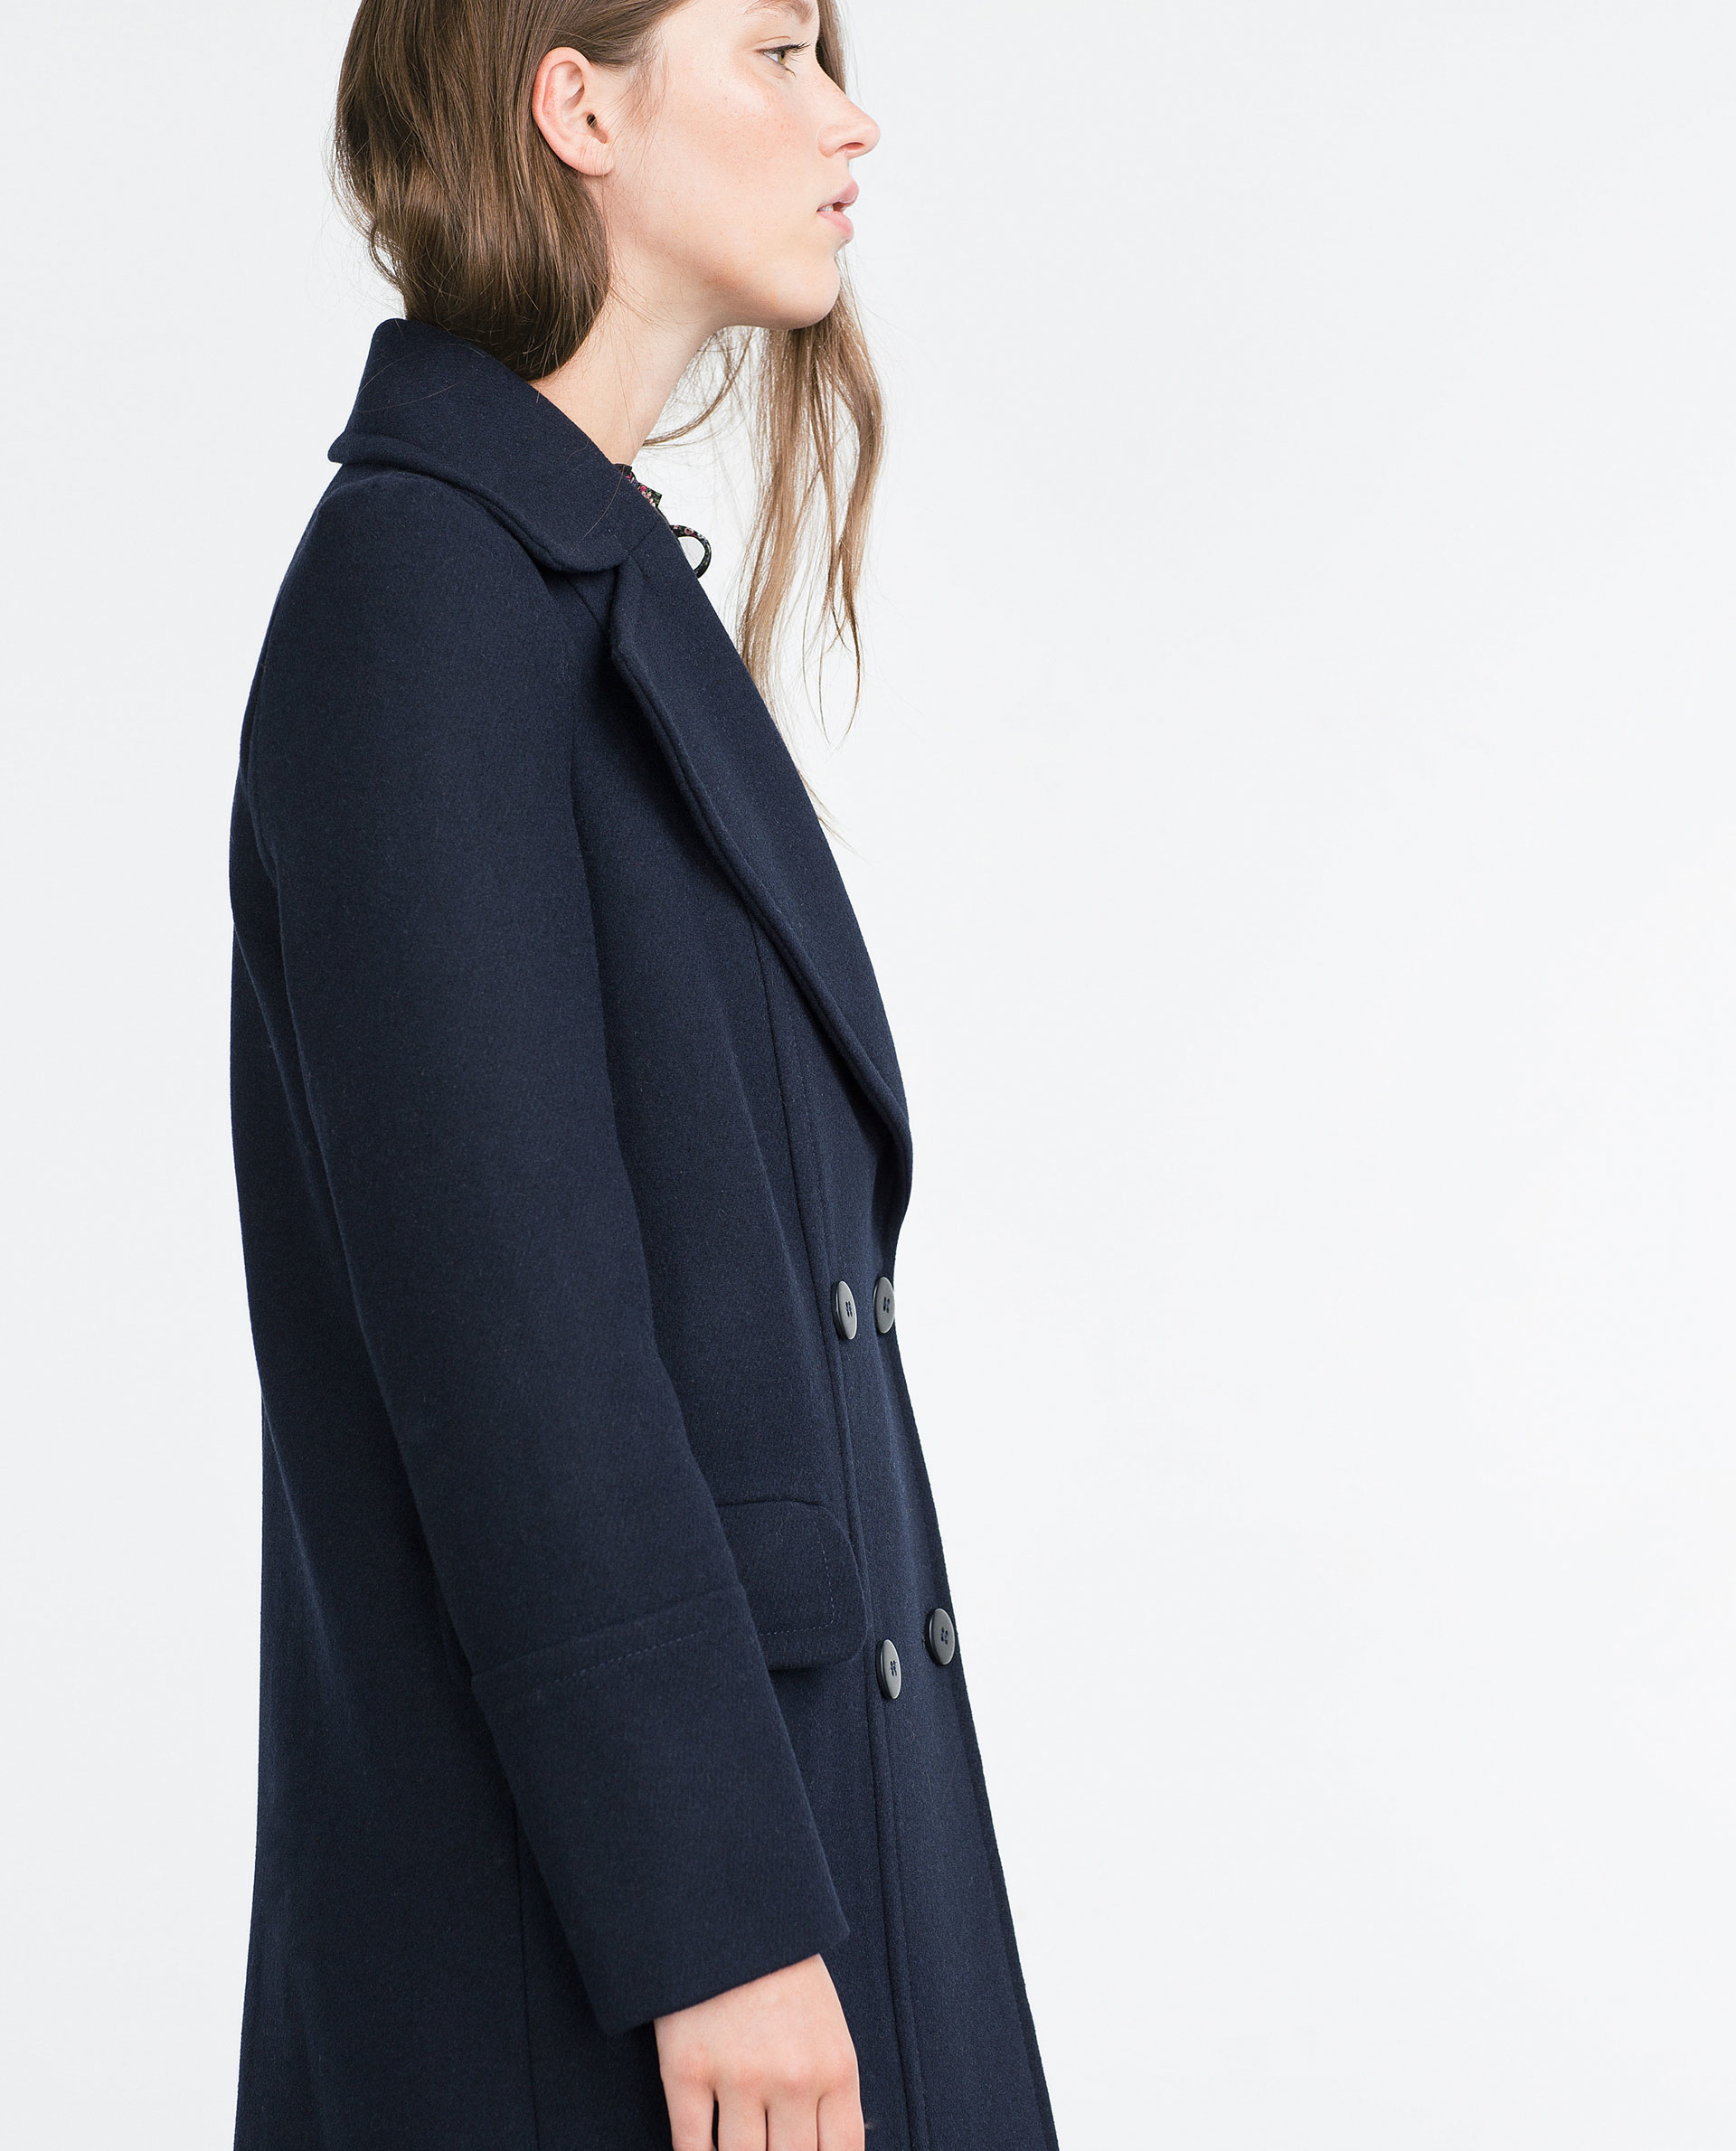 This stunning long wool coat for womens is beautifully fitted and tailored for a classic, feminine design. It features navy blue, a slim fitting bodice with elongated sleeves and tapered waist band leading into a long, flowing skirt, shoulders and sleeve cuffs have a pretty ruffle detailing.